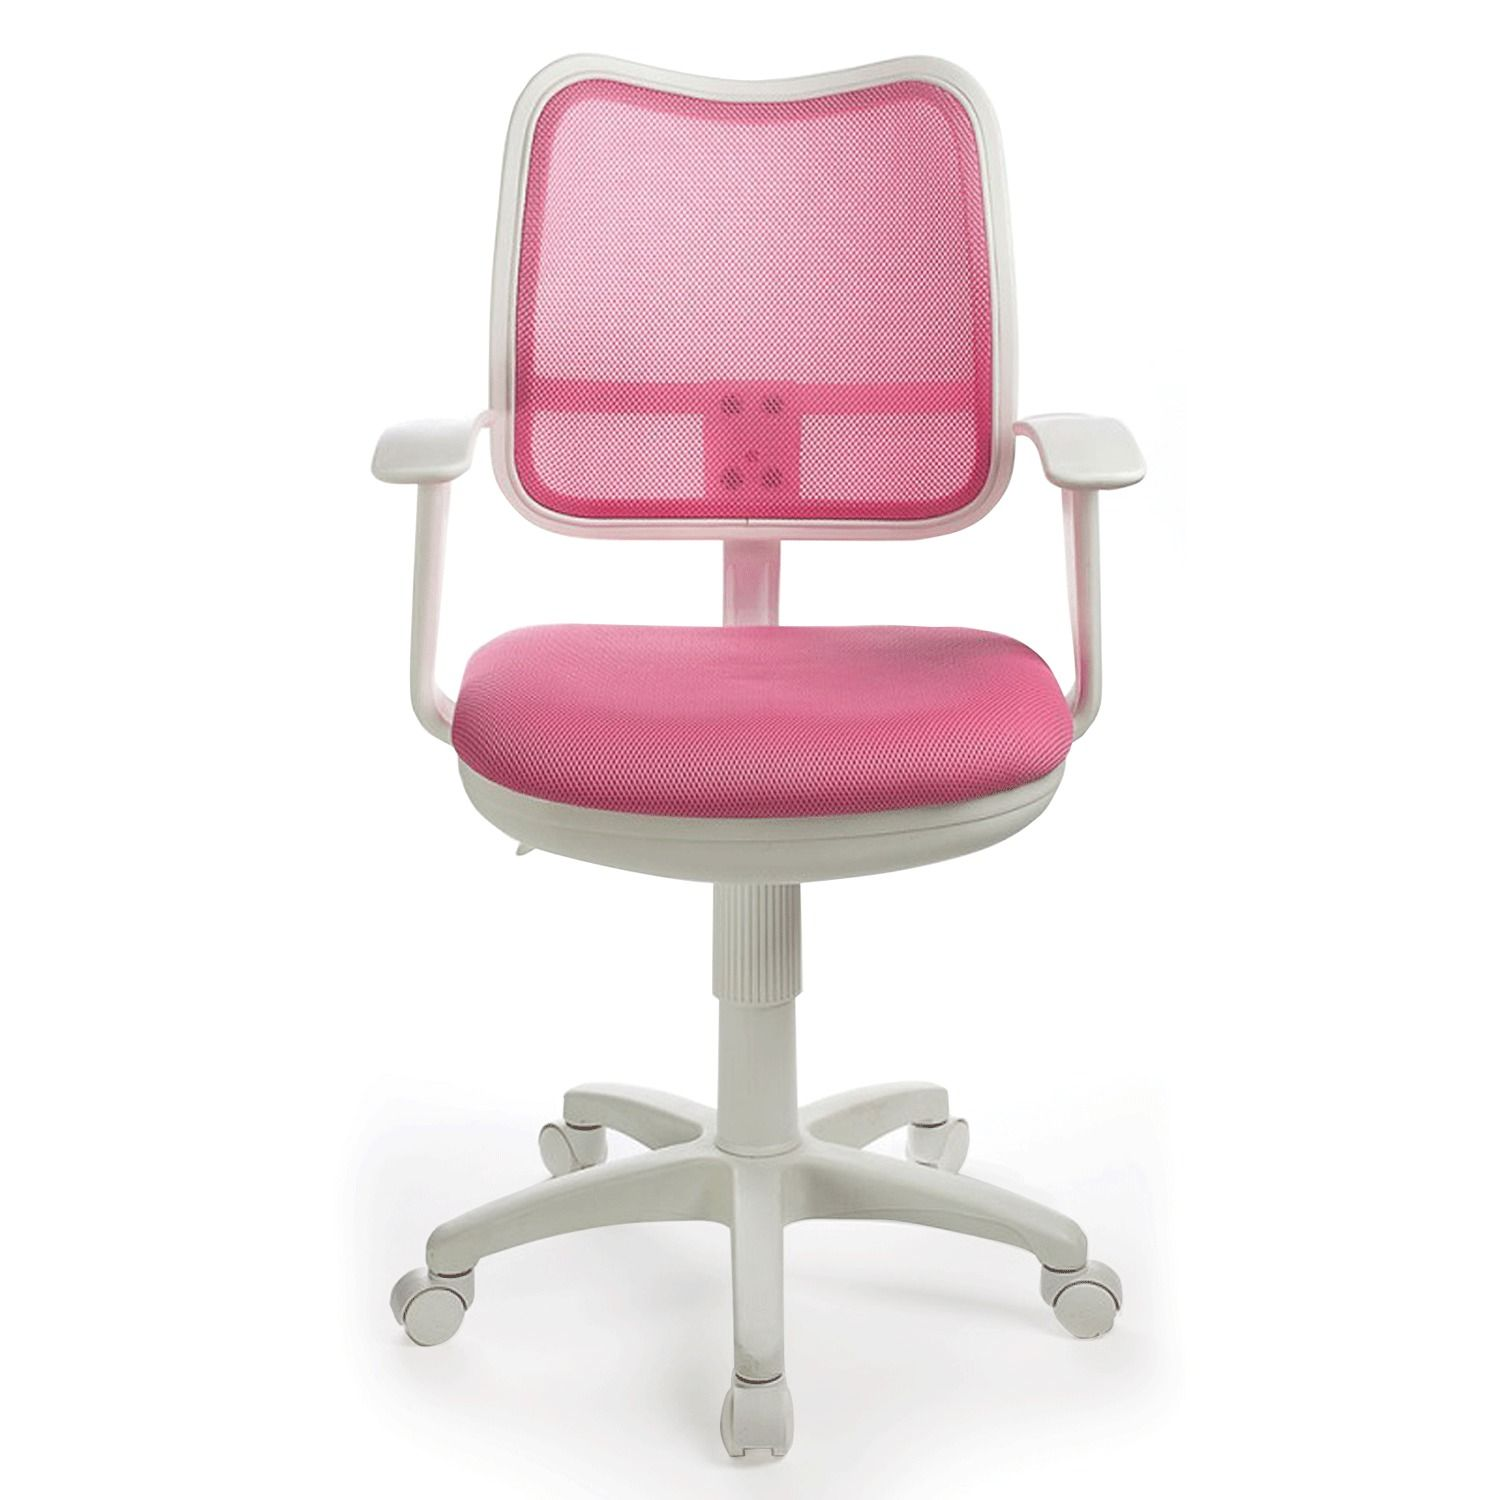 Armchair CH-W797 / PK with armrests, pink